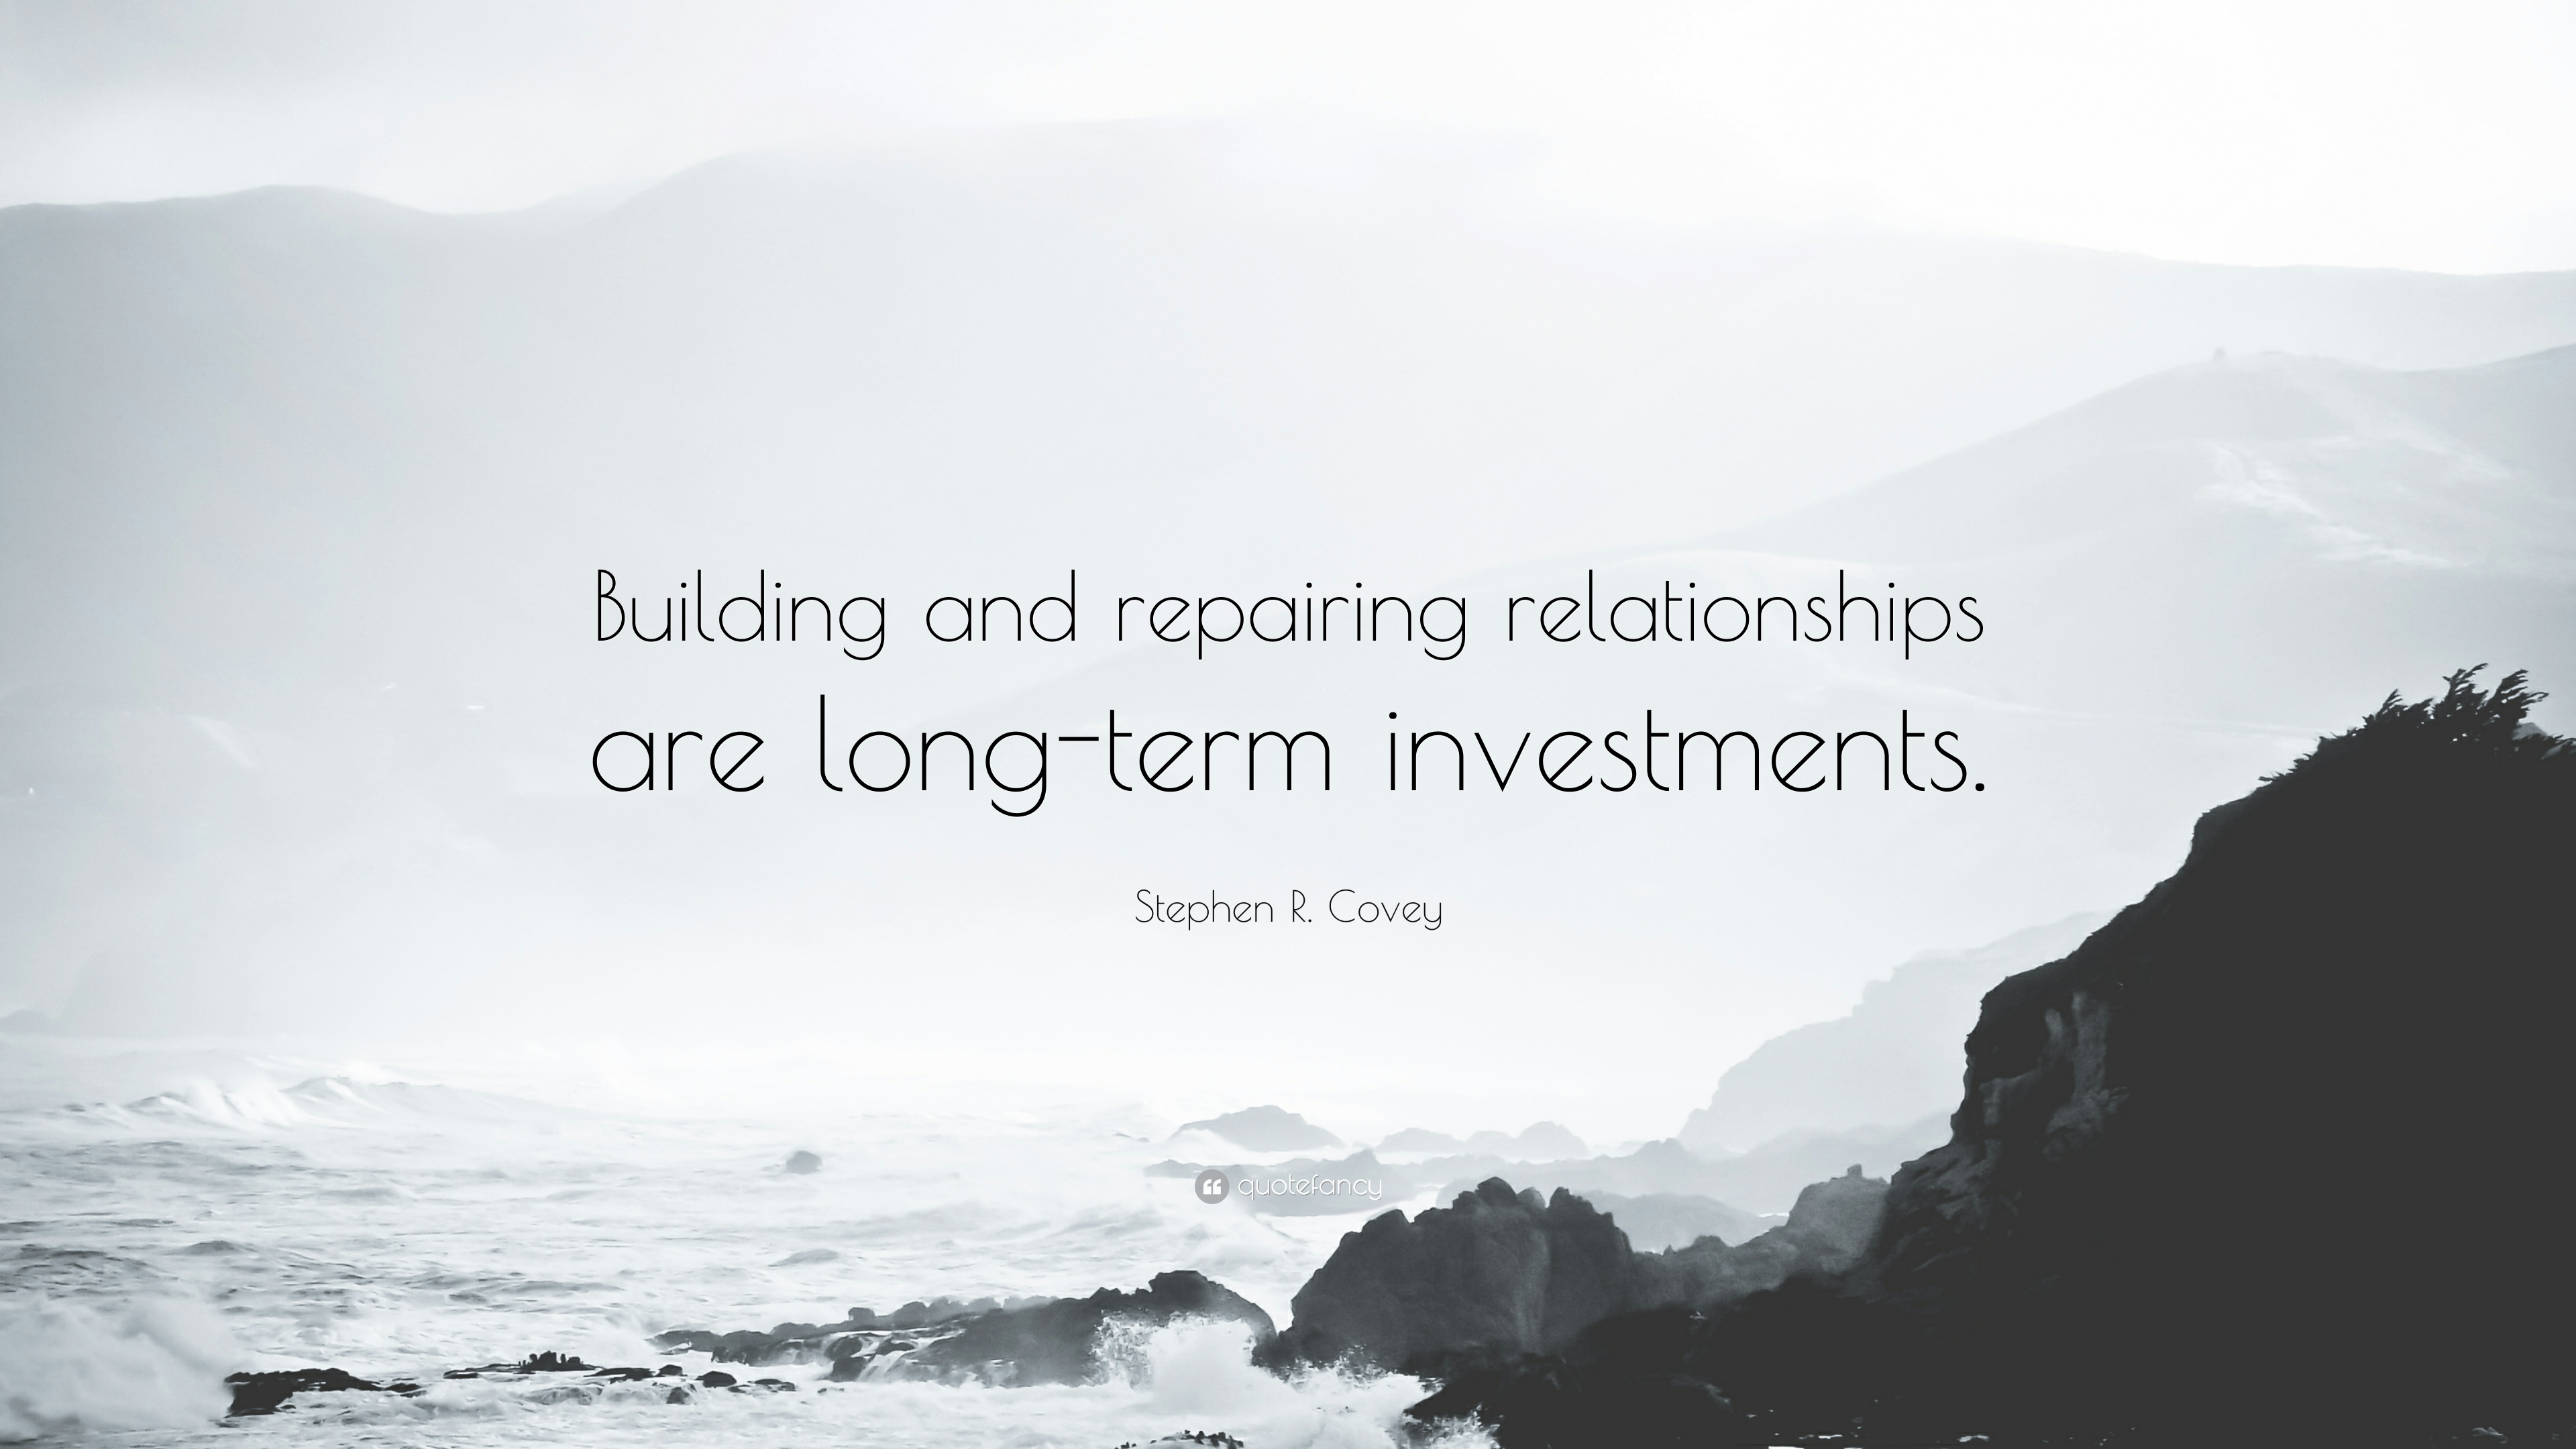 Stephen R Covey Quote Building And Repairing Relationships Are Long Term Investments 7 Wallpapers Quotefancy